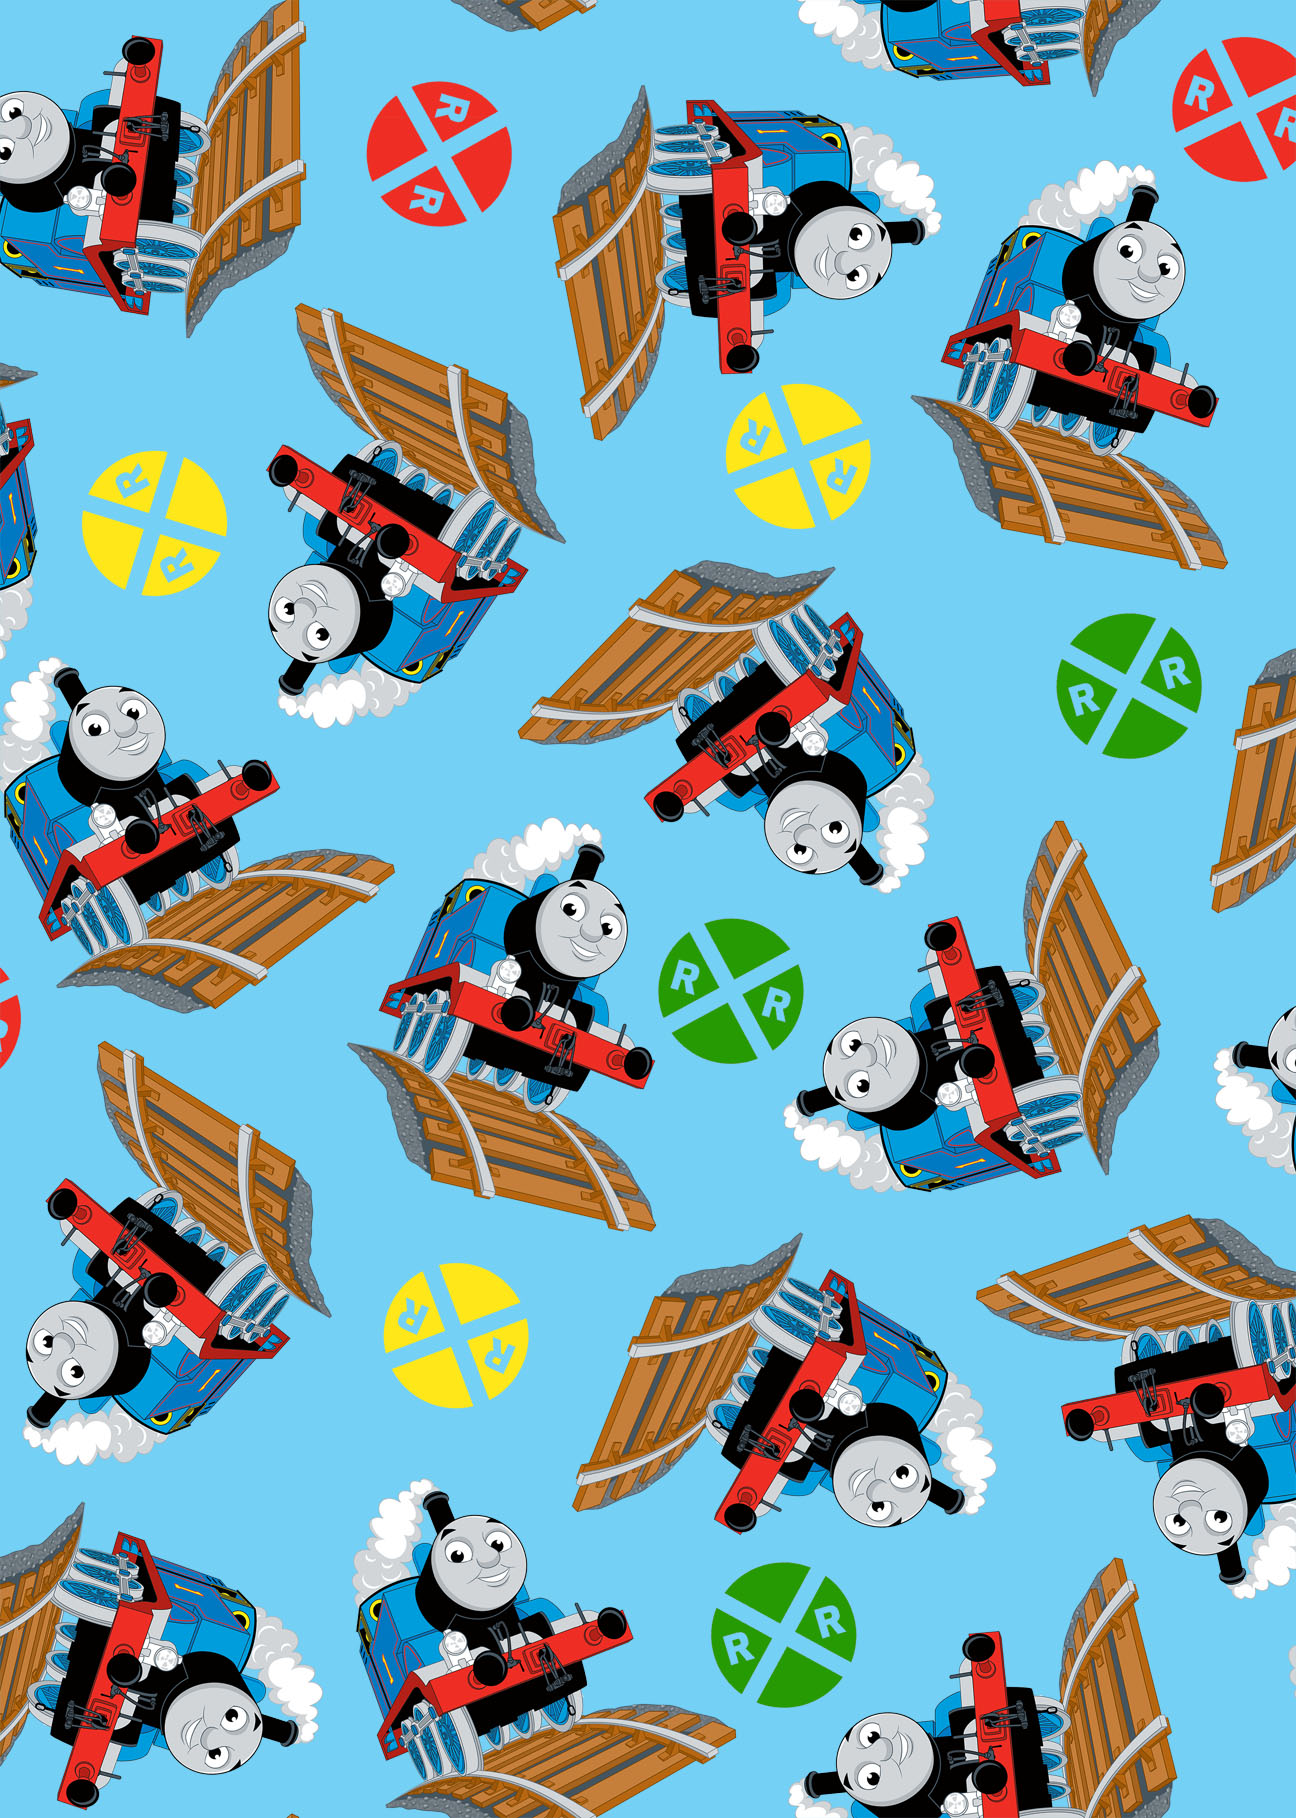 Thomas The Tank Engine Fleece Fabric 59 Signs Joann